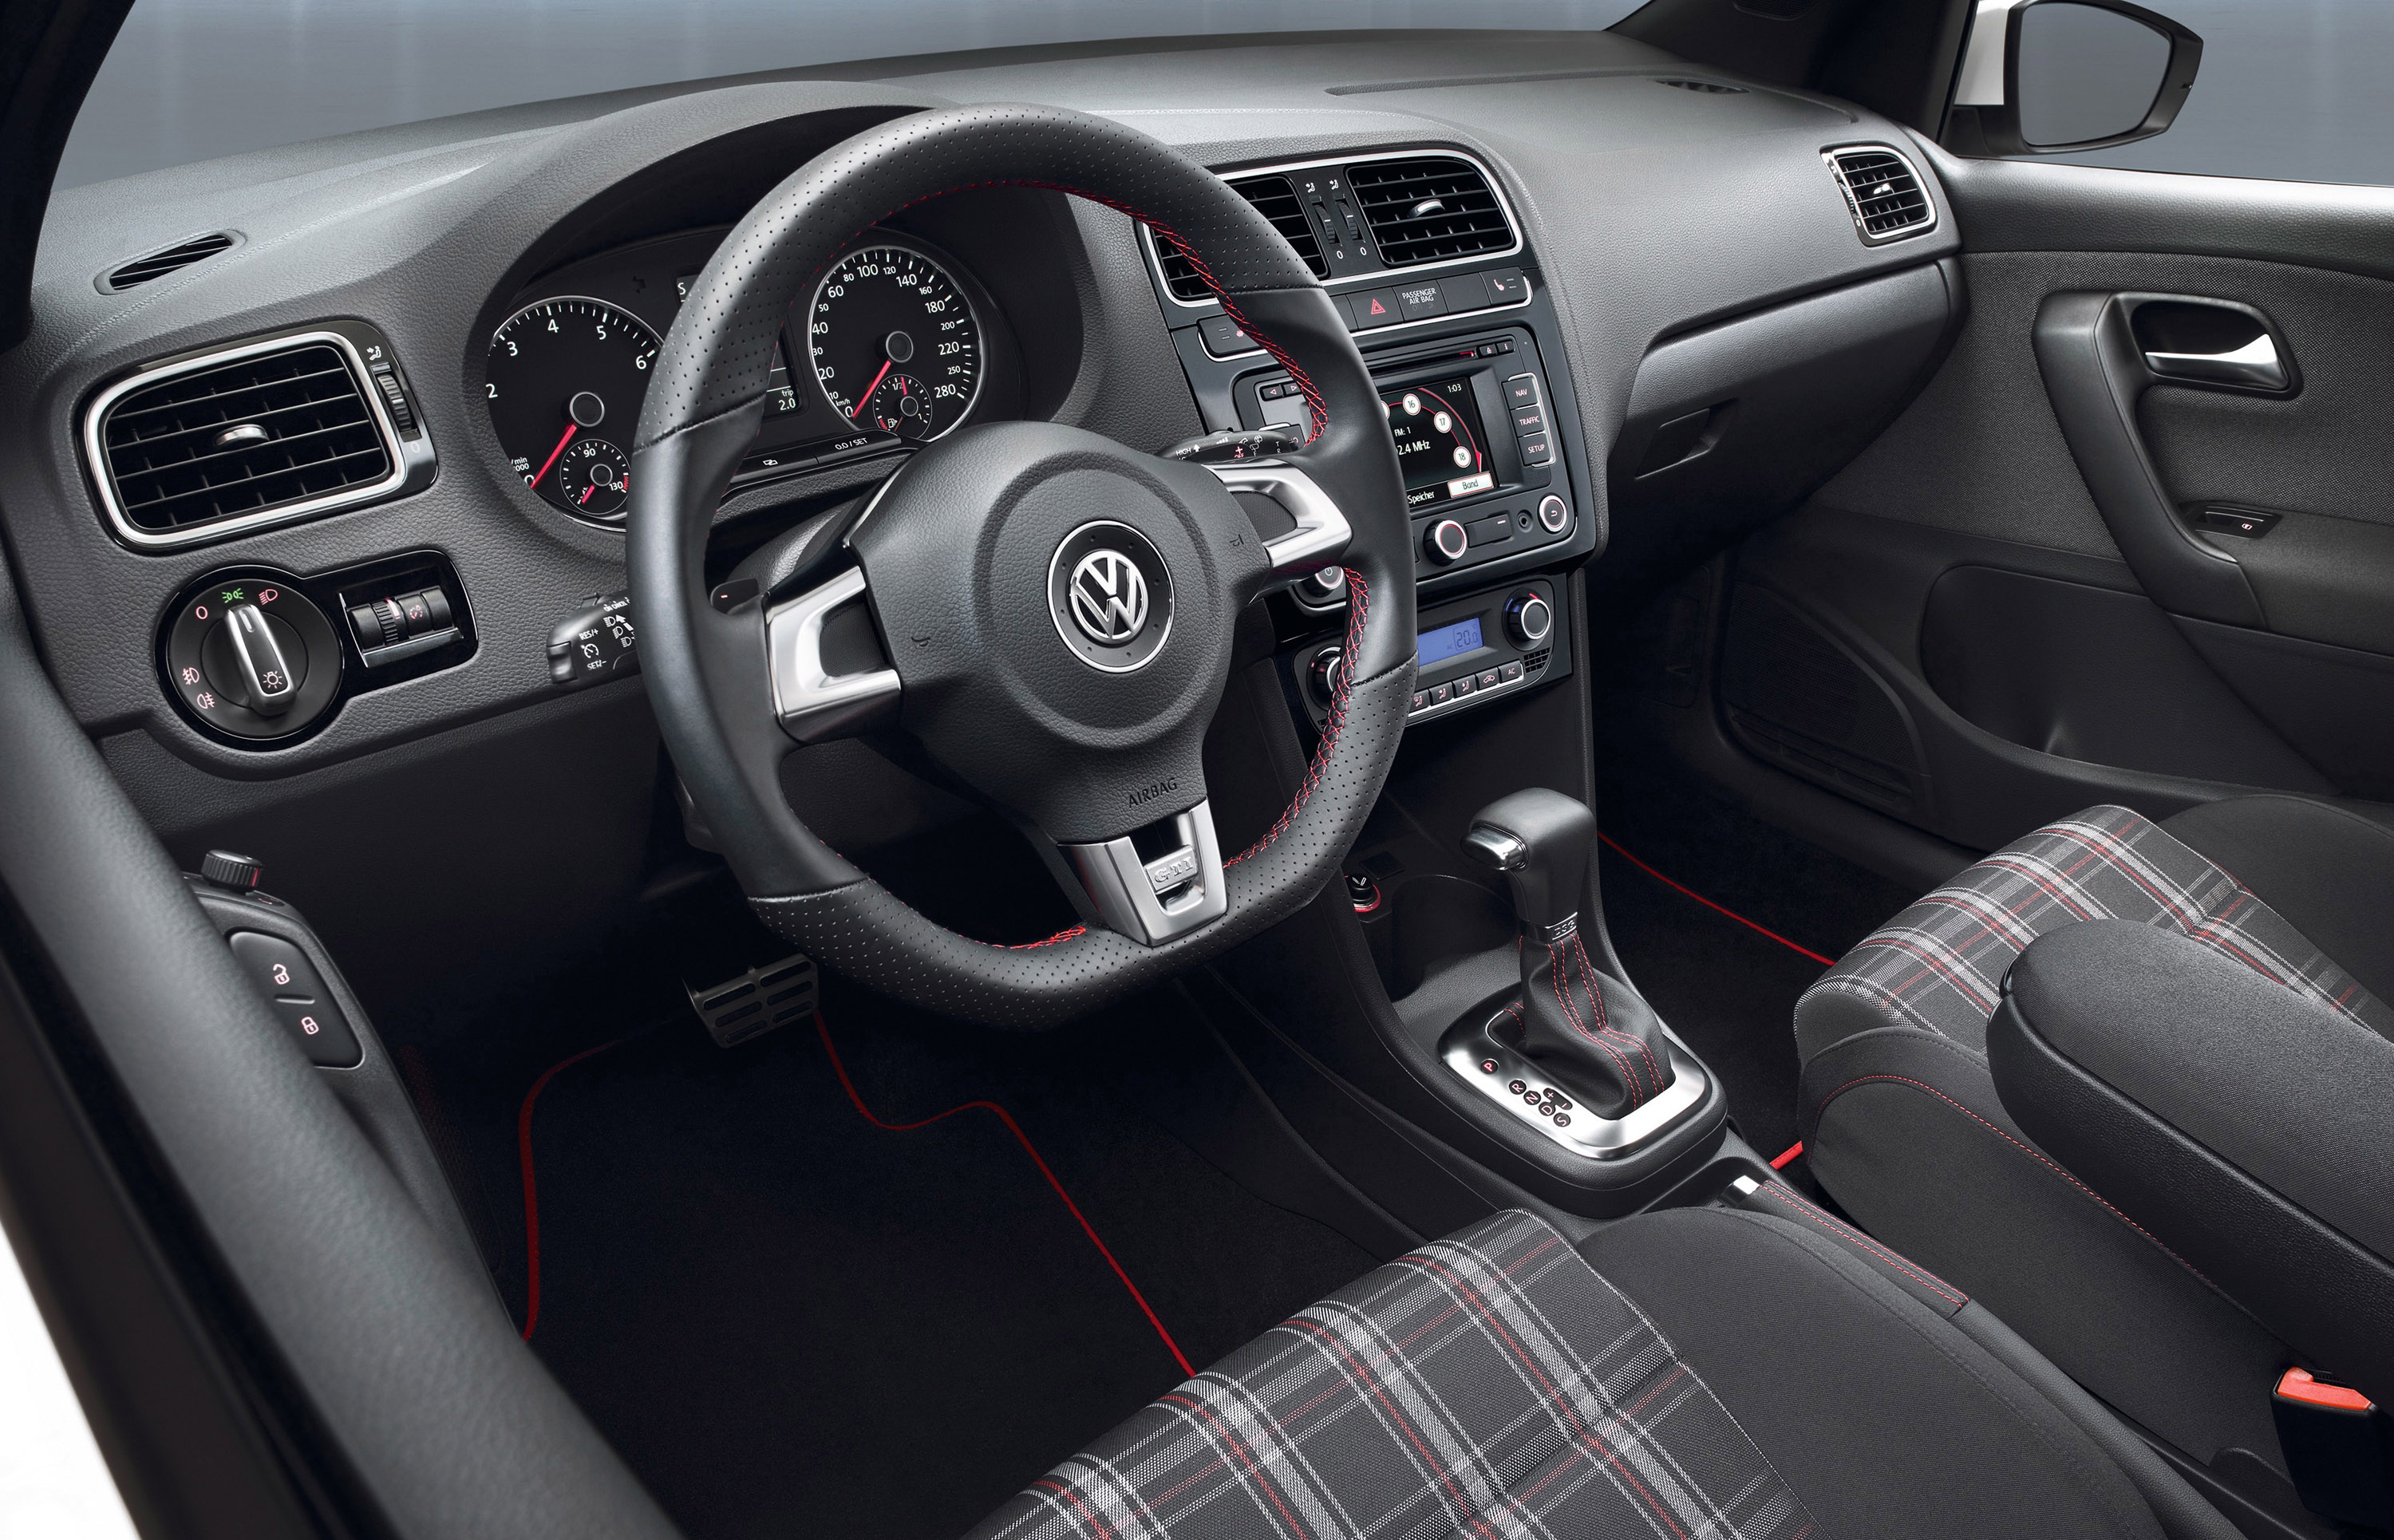 2011 Volkswagen Polo Gti Revealed